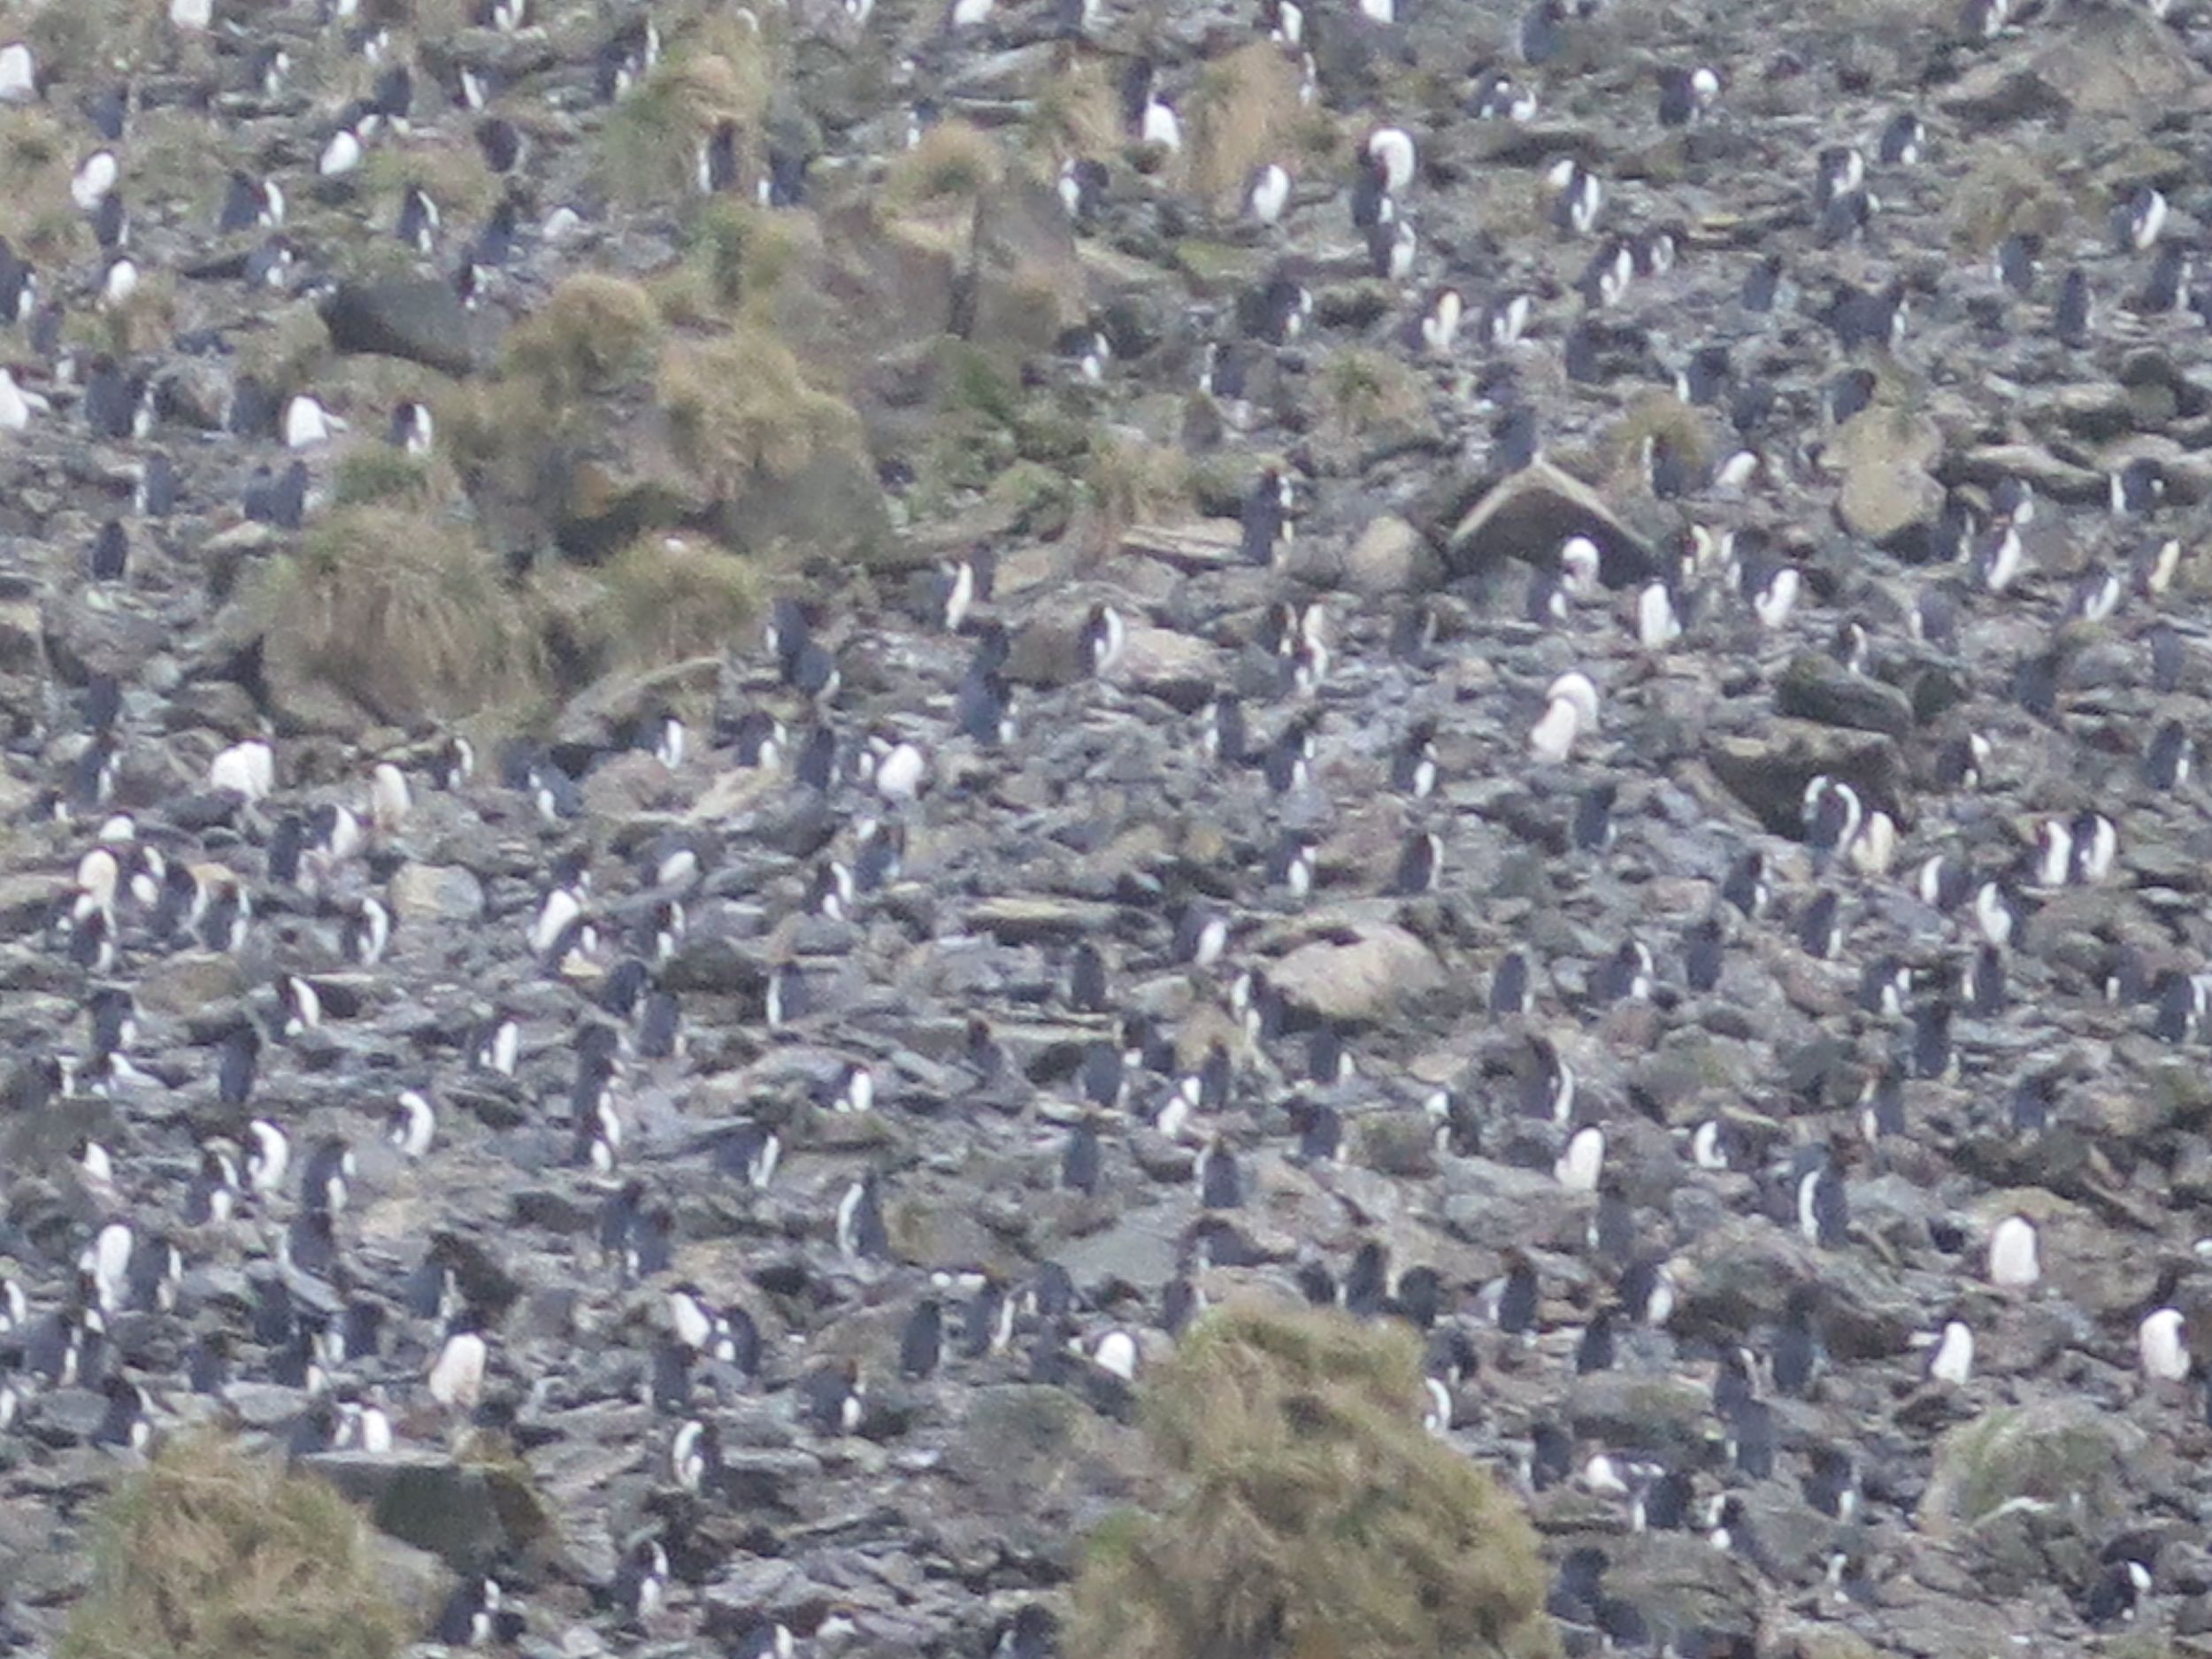 Here's a (blurry) closeup of the colony. Macaroni penguins are closely related to rockhopper penguins and share the ability to climb up steep rocky hills to reach seemingly inaccessible spots like this.